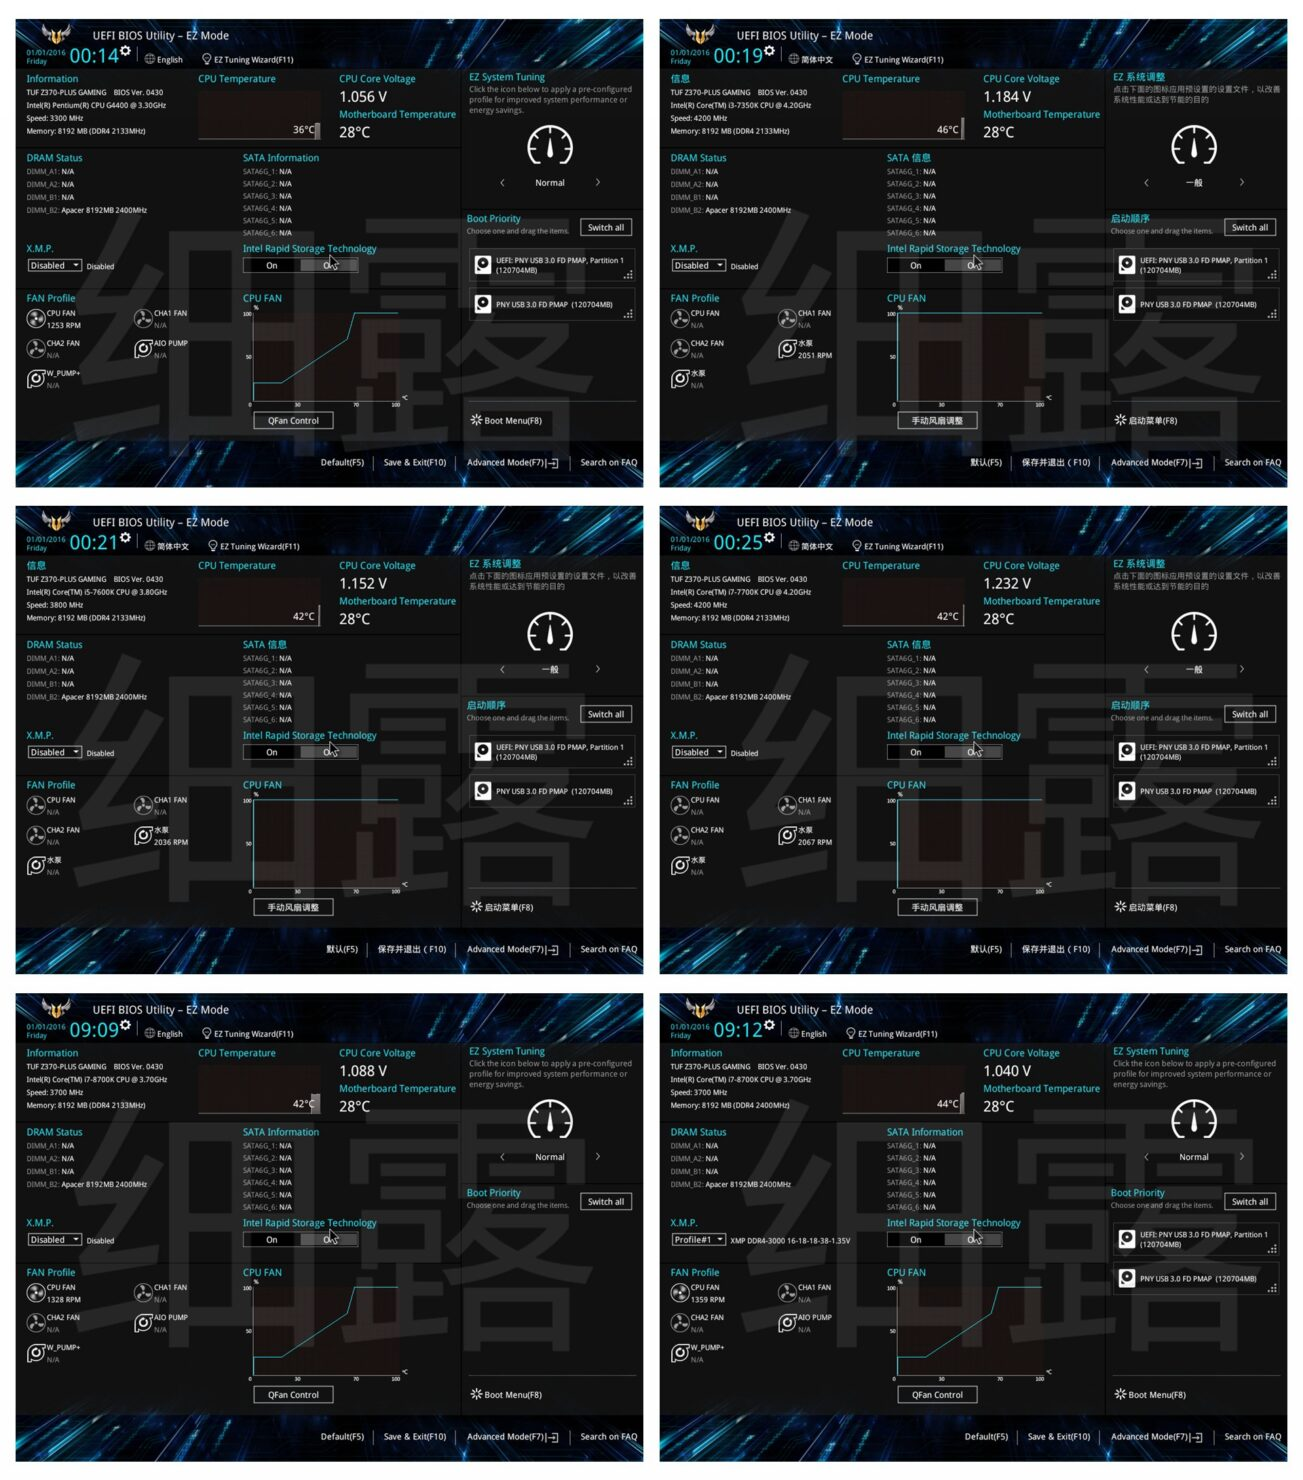 asus-z370_6th-and-7th-gen-processors-support_1